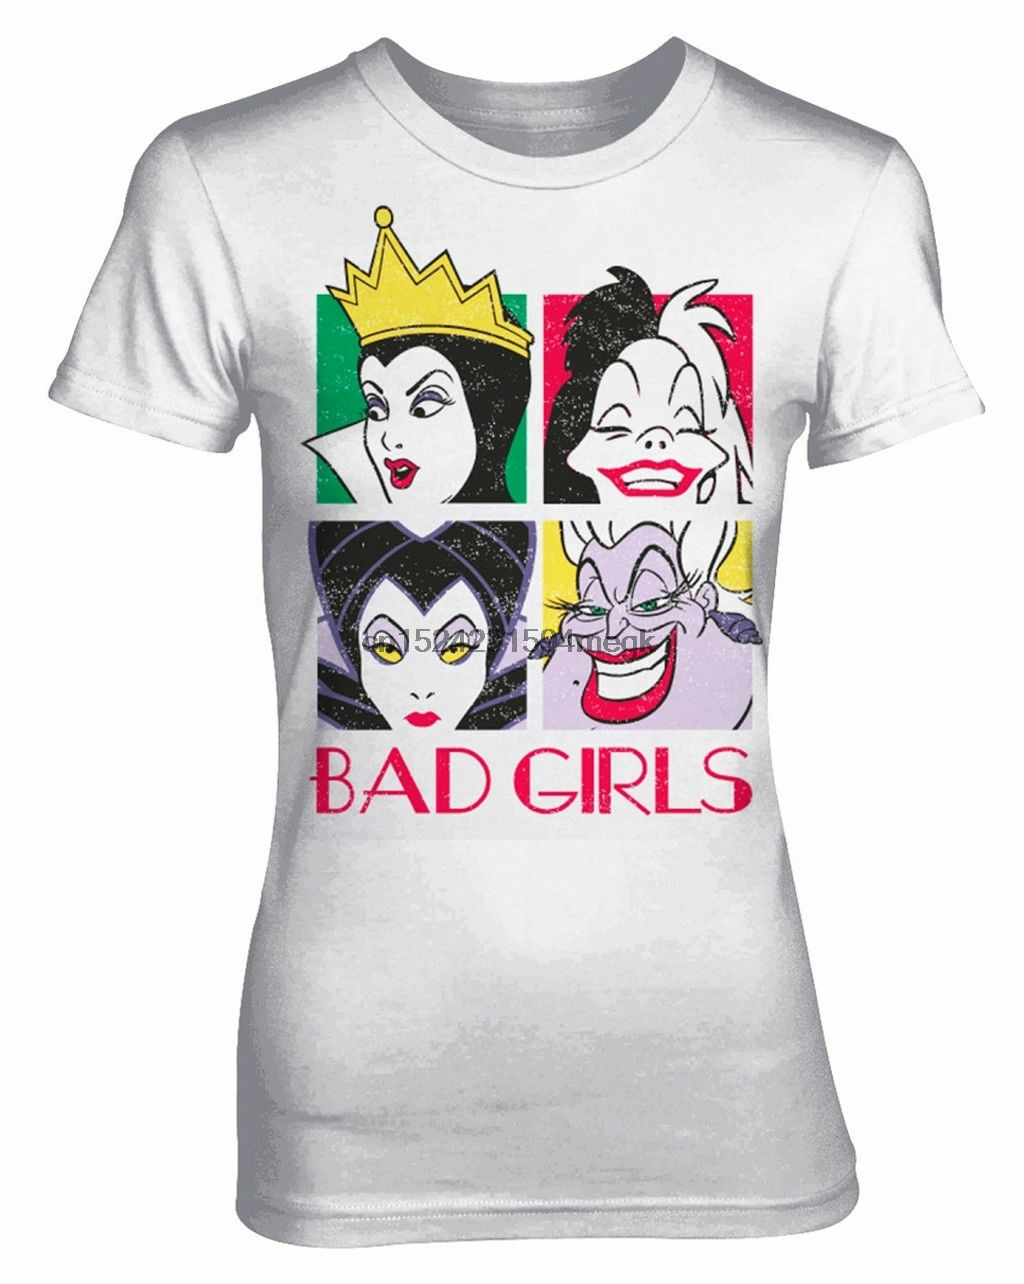 'Bad Girls' Womens Fitted T-Shirt - NEW &amp OFFICIAL!